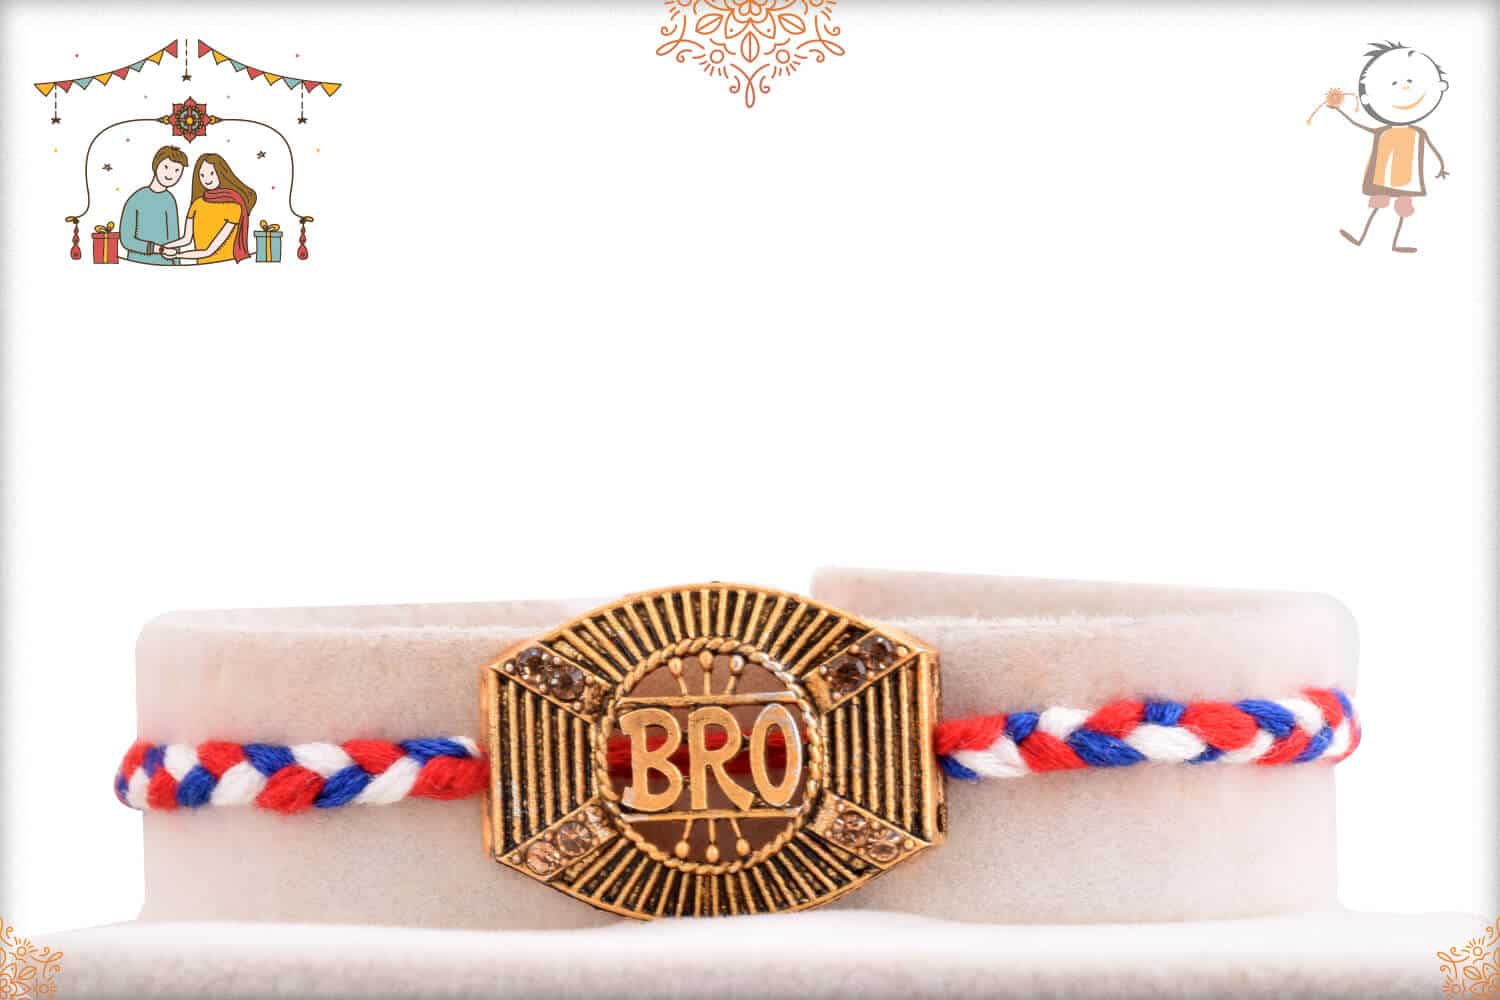 Bro Rakhi with Red-Blue Handcrafted Thread 1